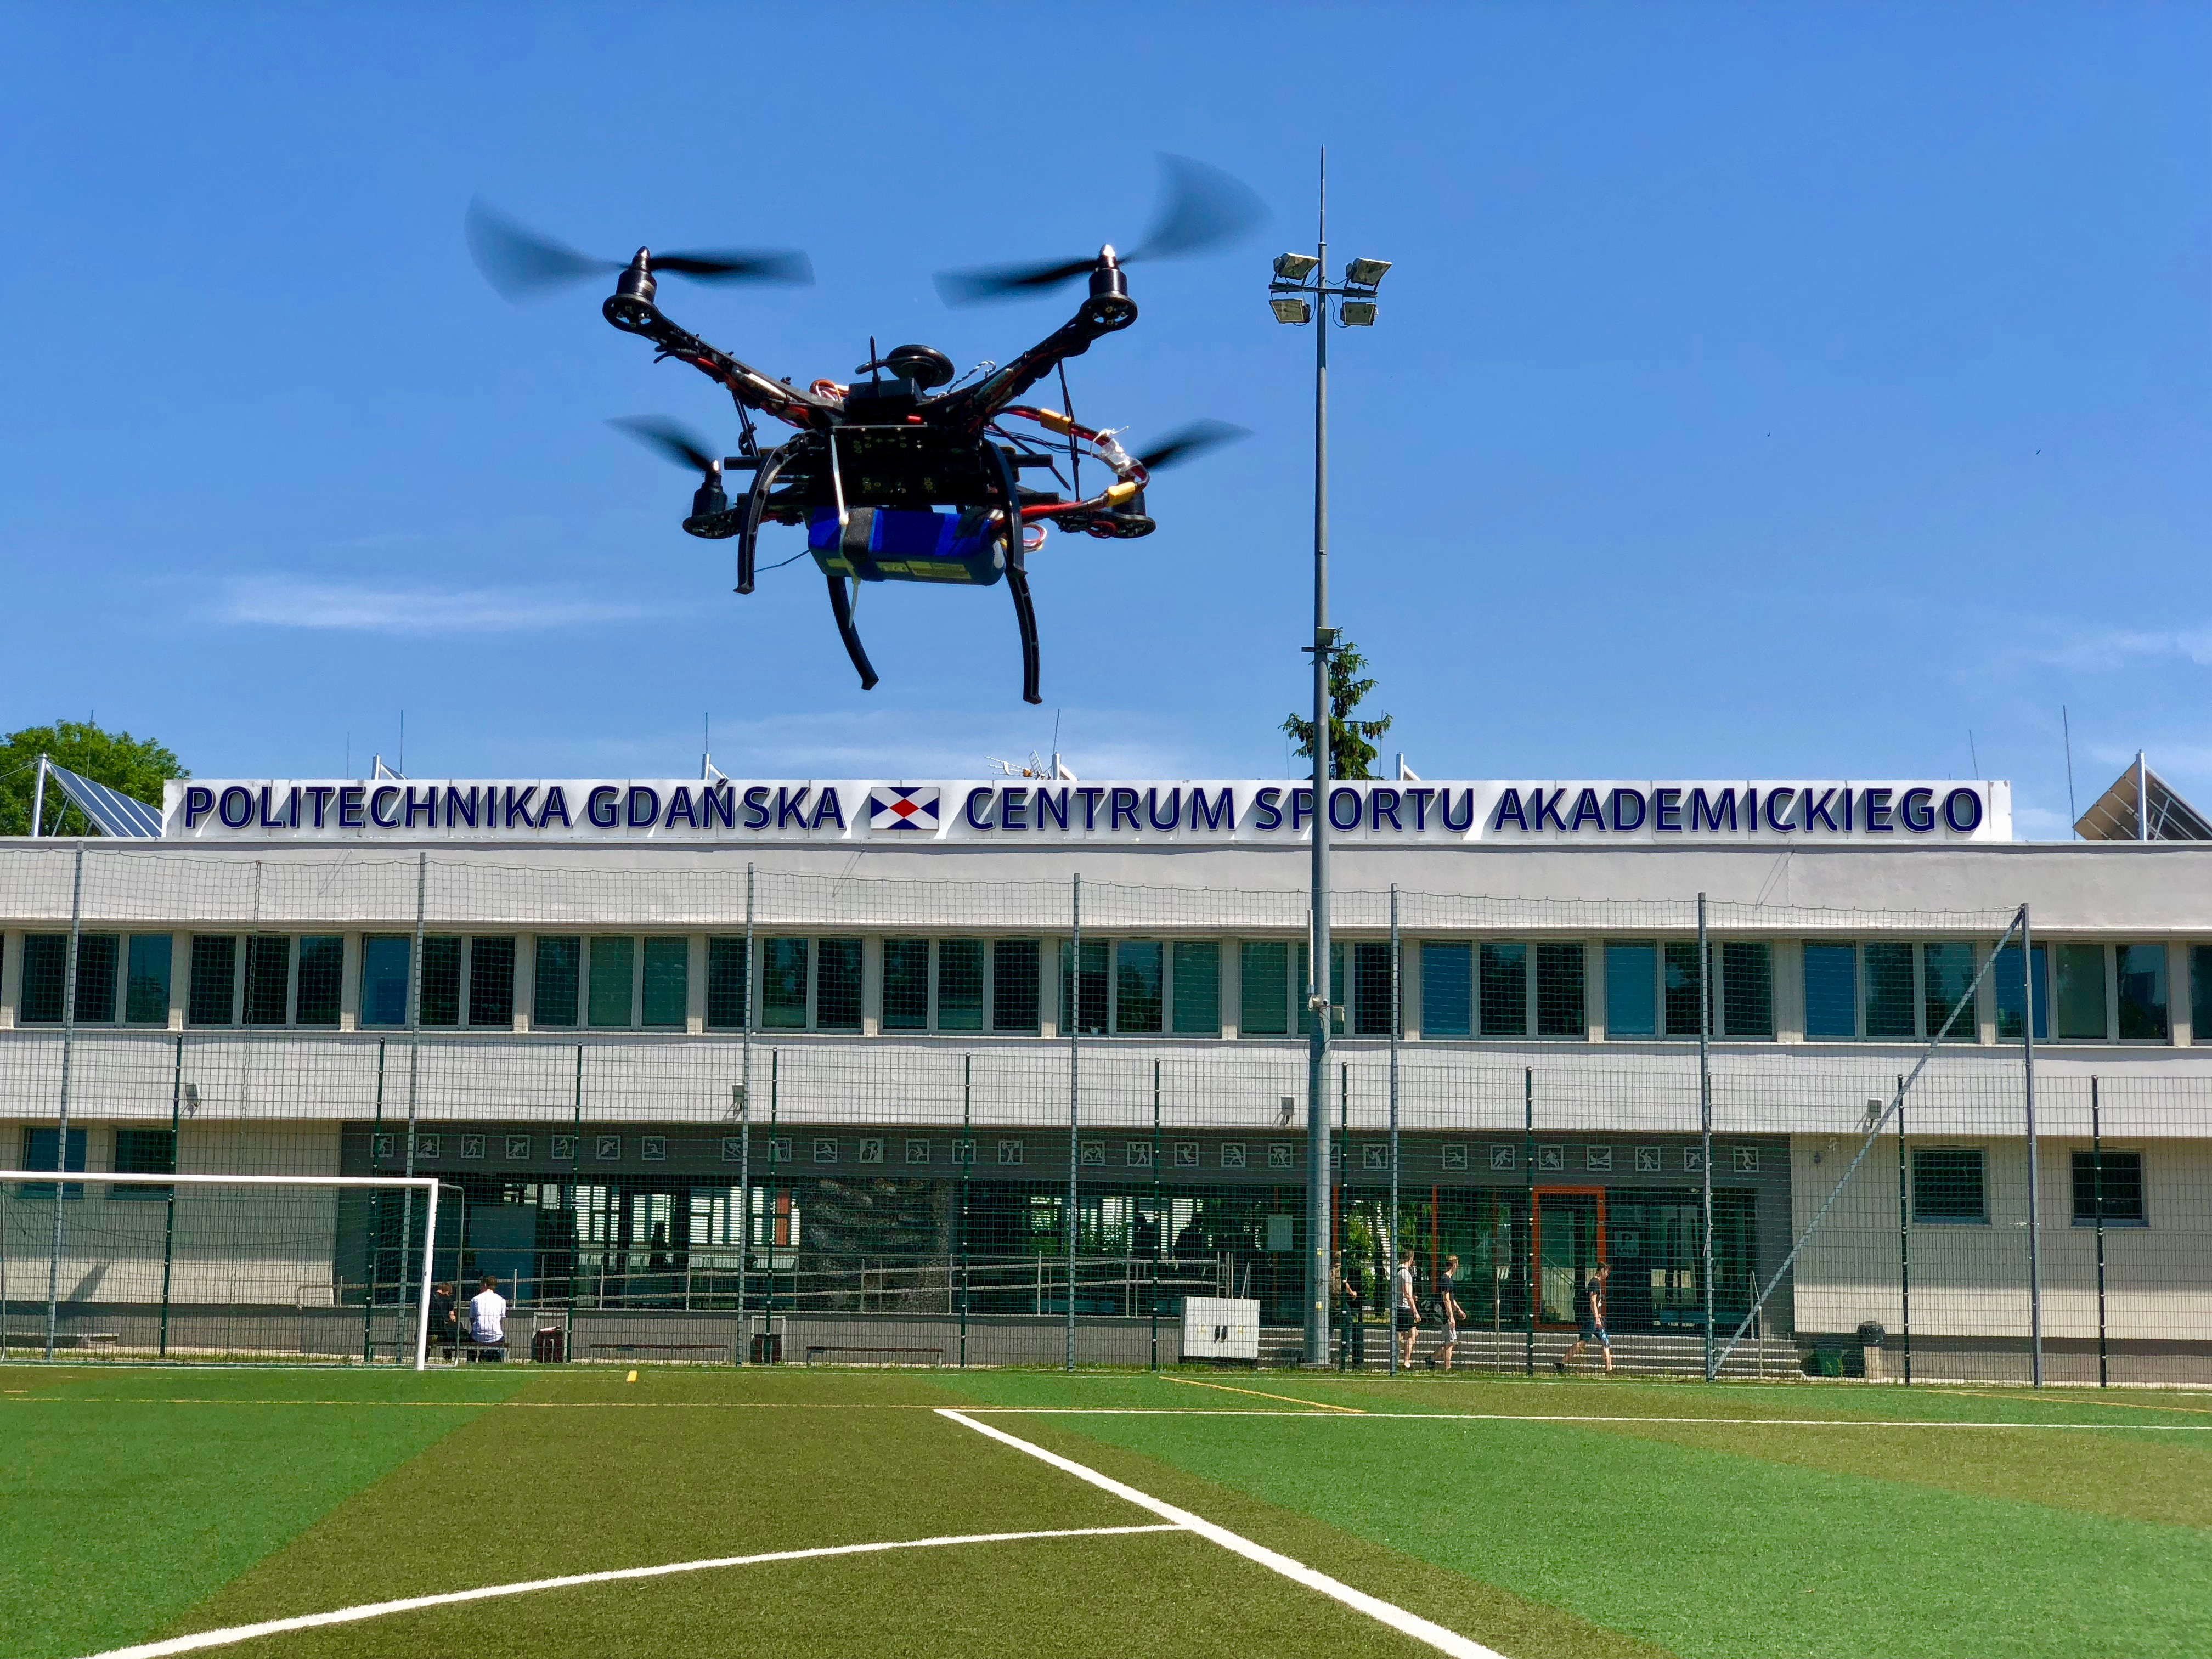 Drone over the pitch